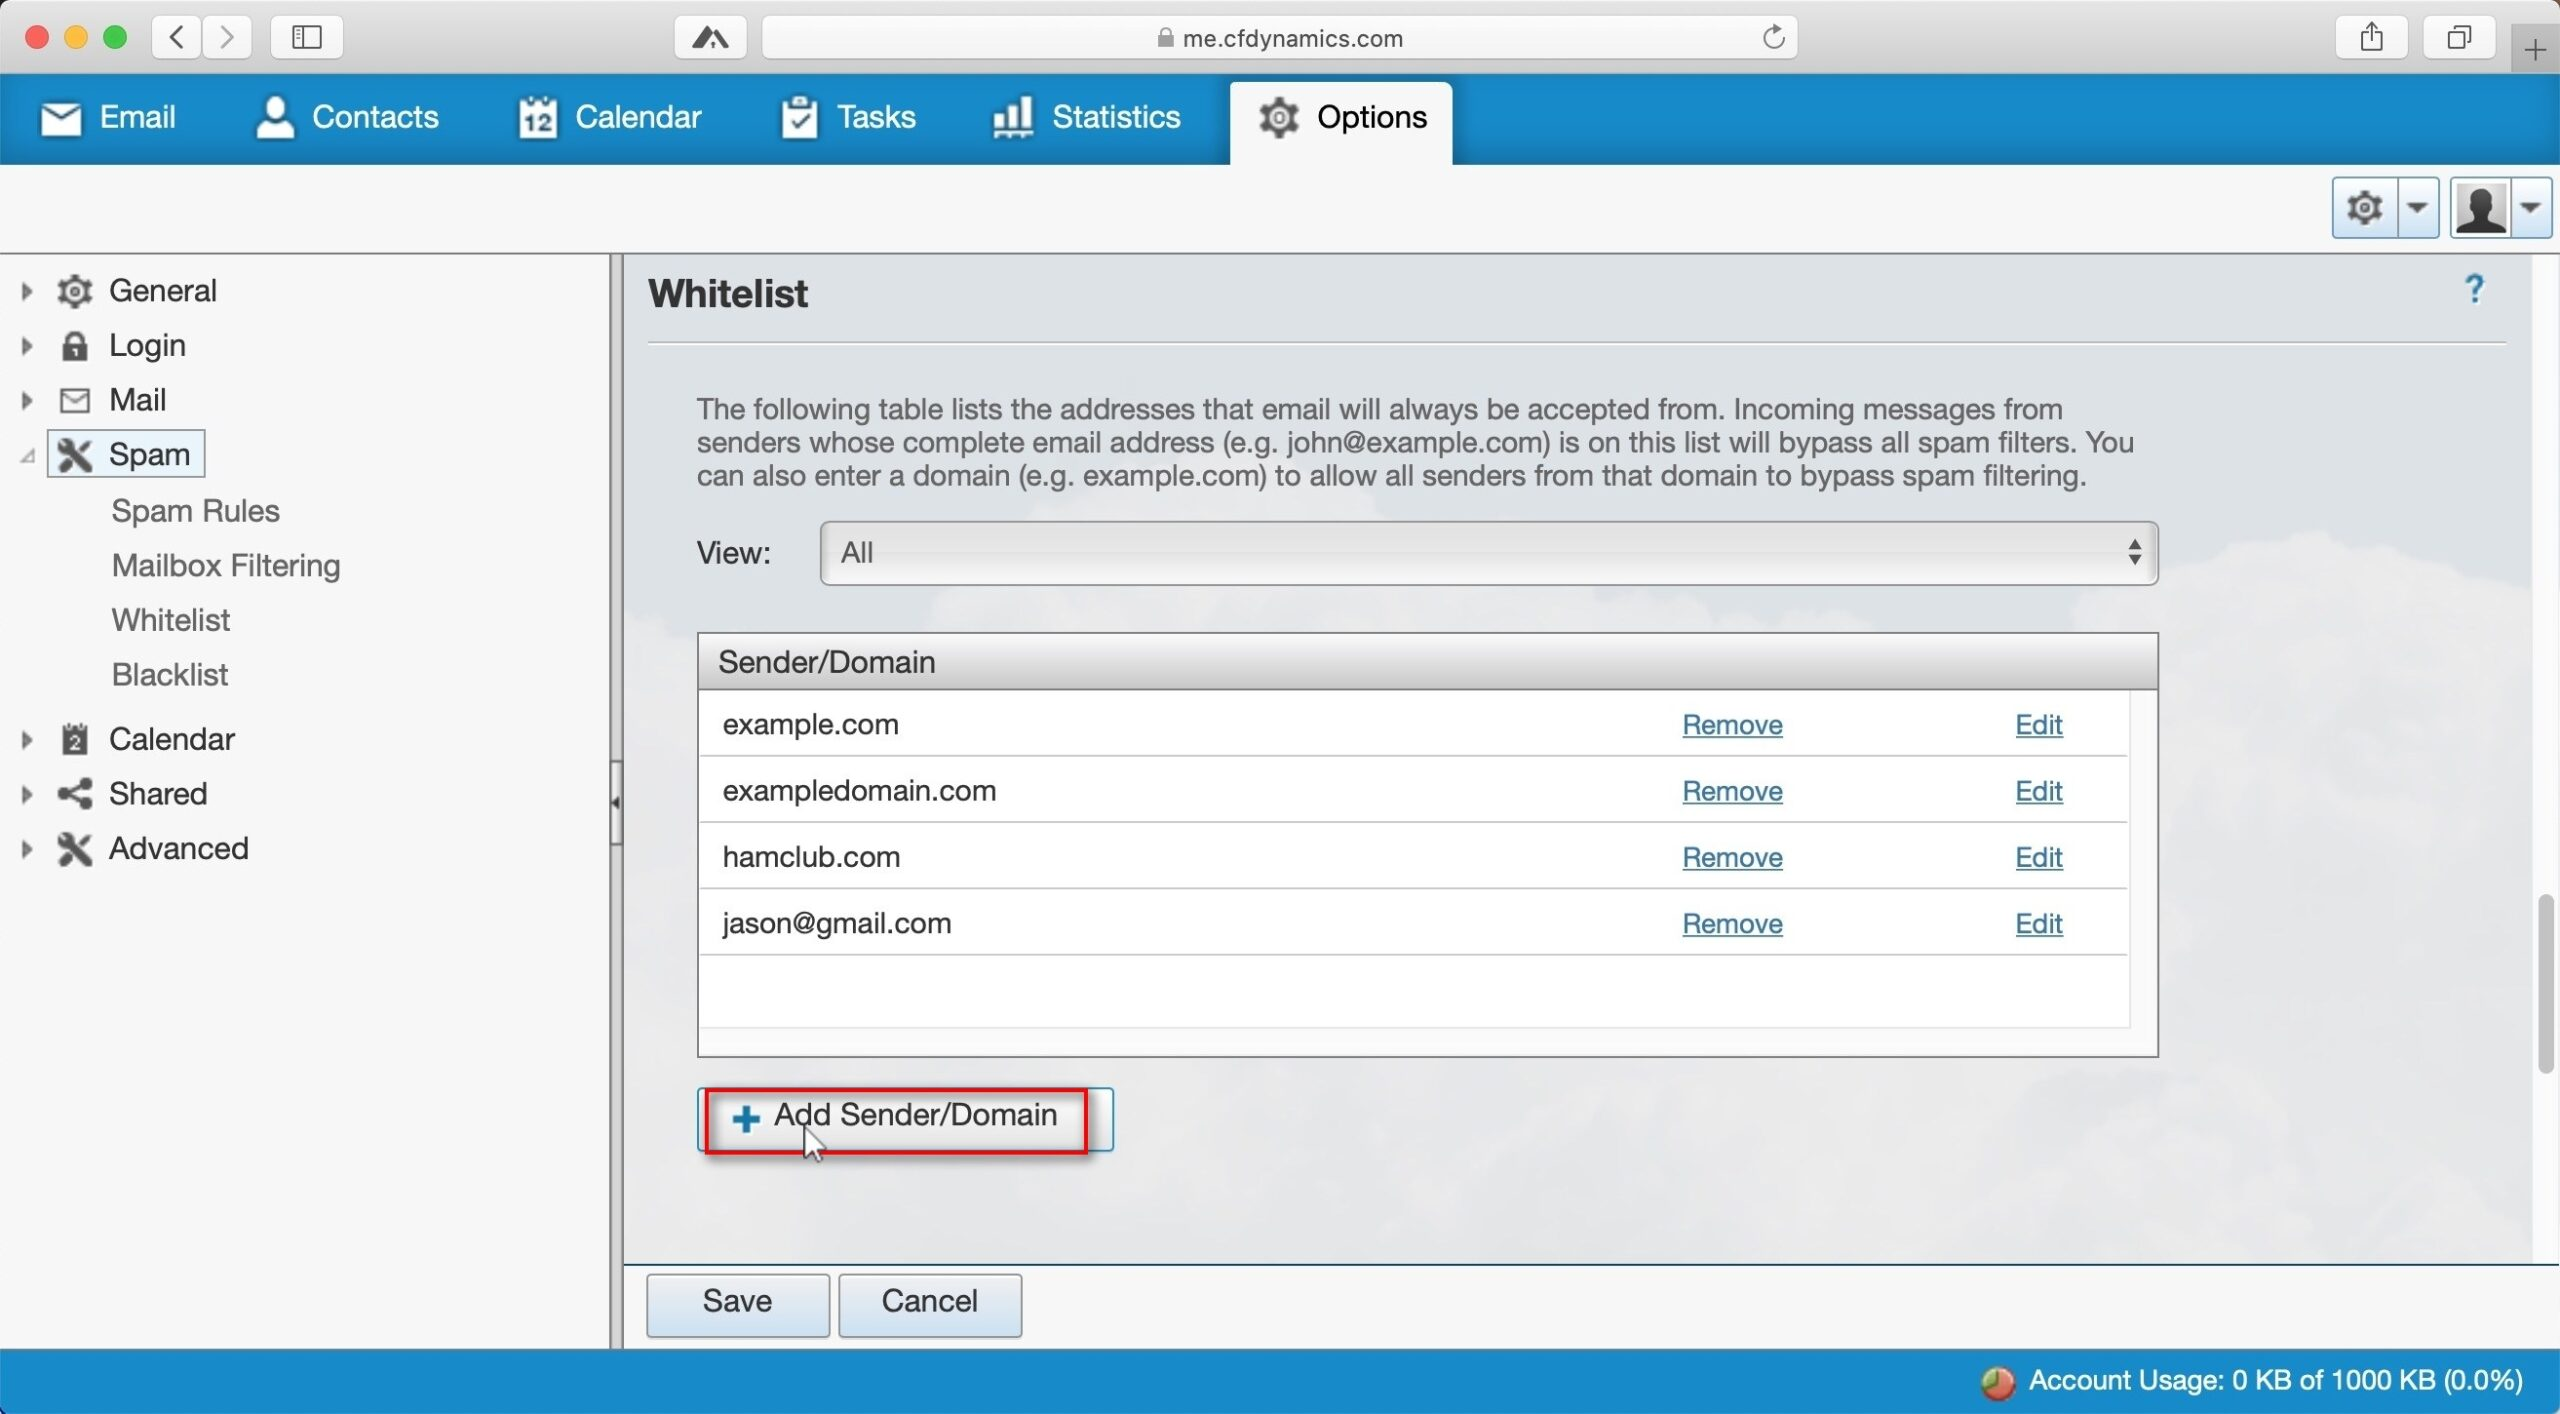 Adding spam rule exceptions Click on + Add Sender/Domain to manage your Whitelist.